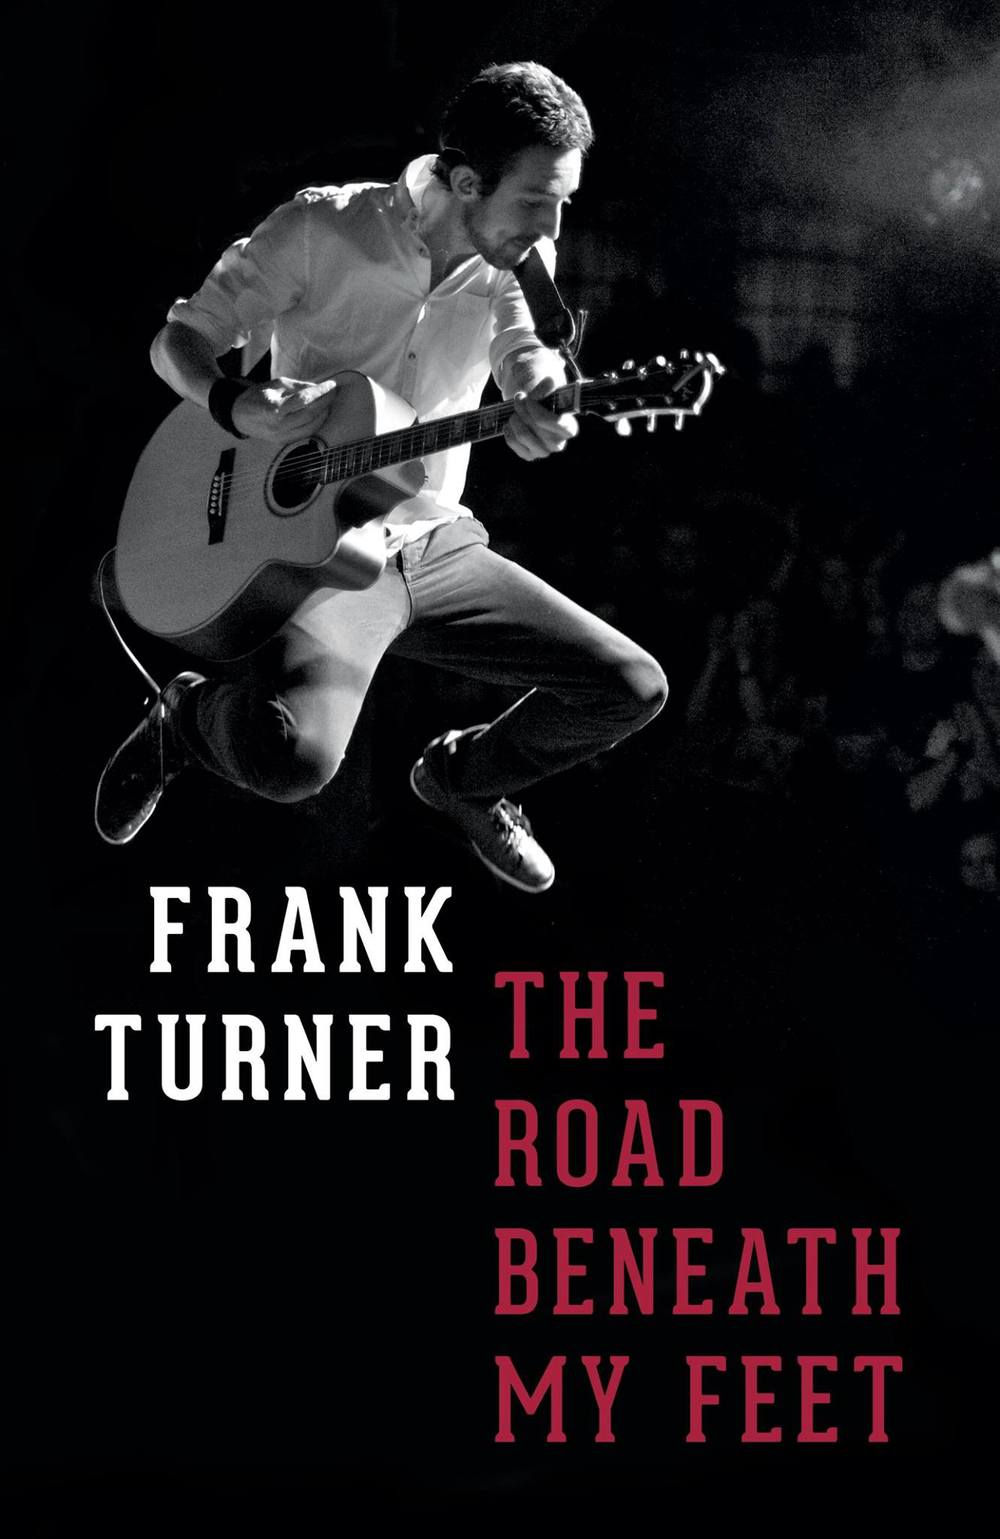 Frank Turner's The Road Beneath My Feet hardcover (photo by Gregory Nolan) - click to buy from Amazon.